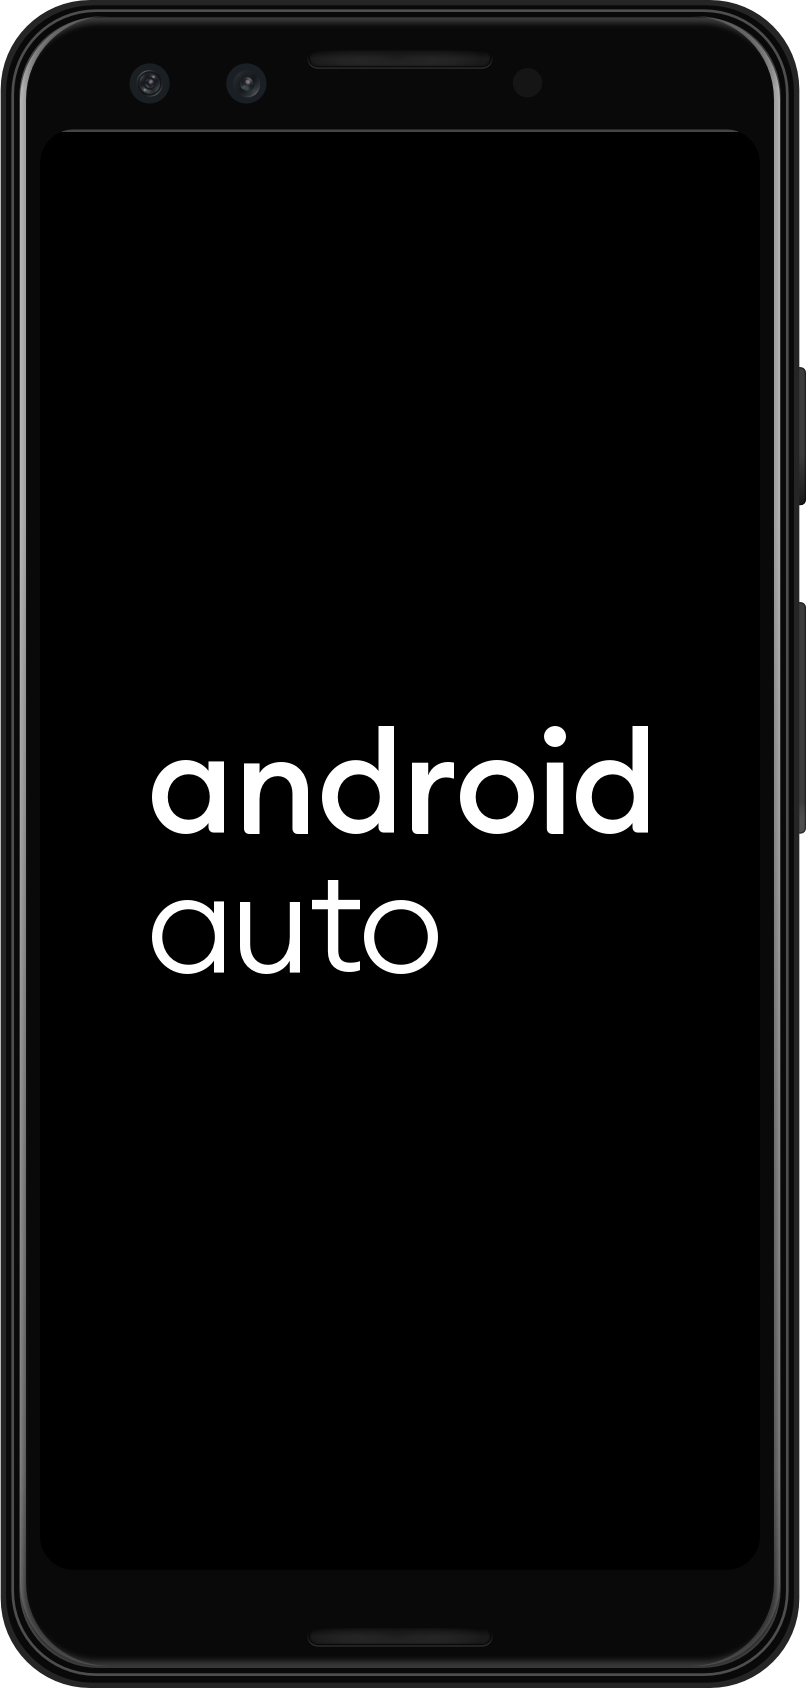 Android Auto is launched on the mobile device